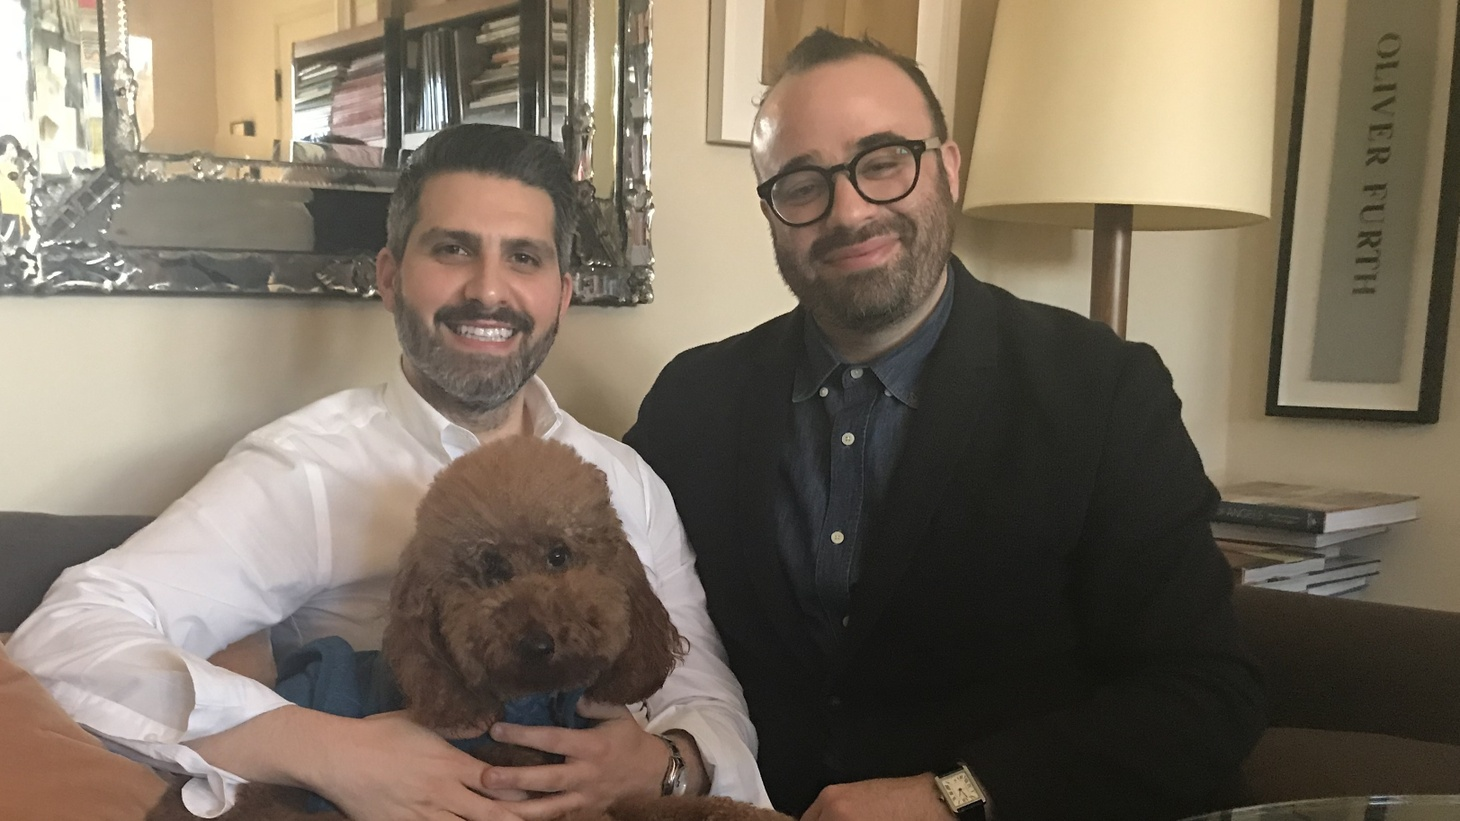 With Milan Furniture Fair postponed, Sean Yashar and Oliver Furth will be spending more time in LA with pet poodle Murphy.